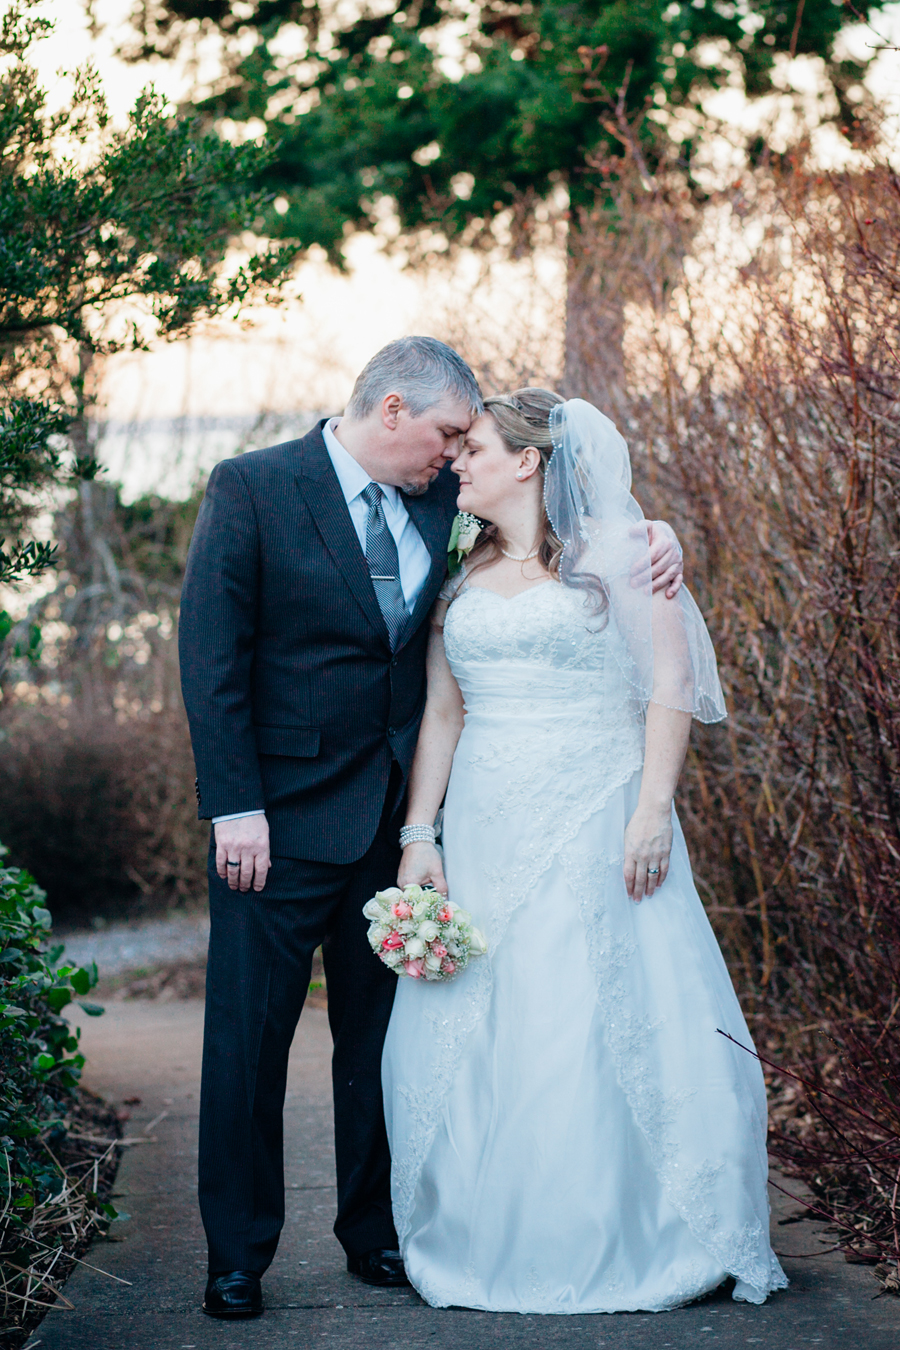 044-bellingham-wedding-photographer-chrysalis-inn-and-spa-elopement-katheryn-moran-photography.jpg